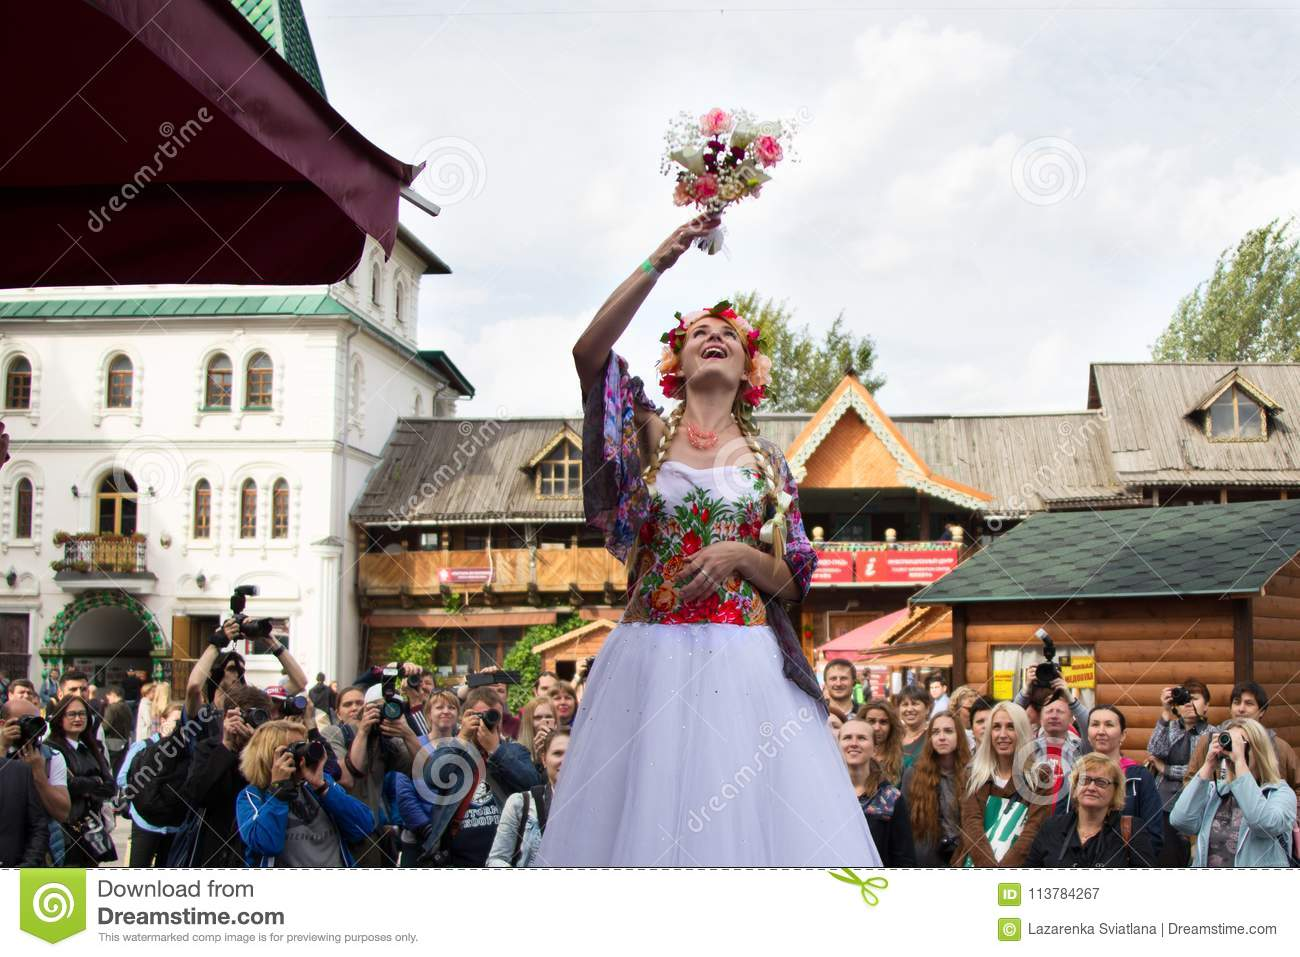 The Russian bride throws a bouquet.